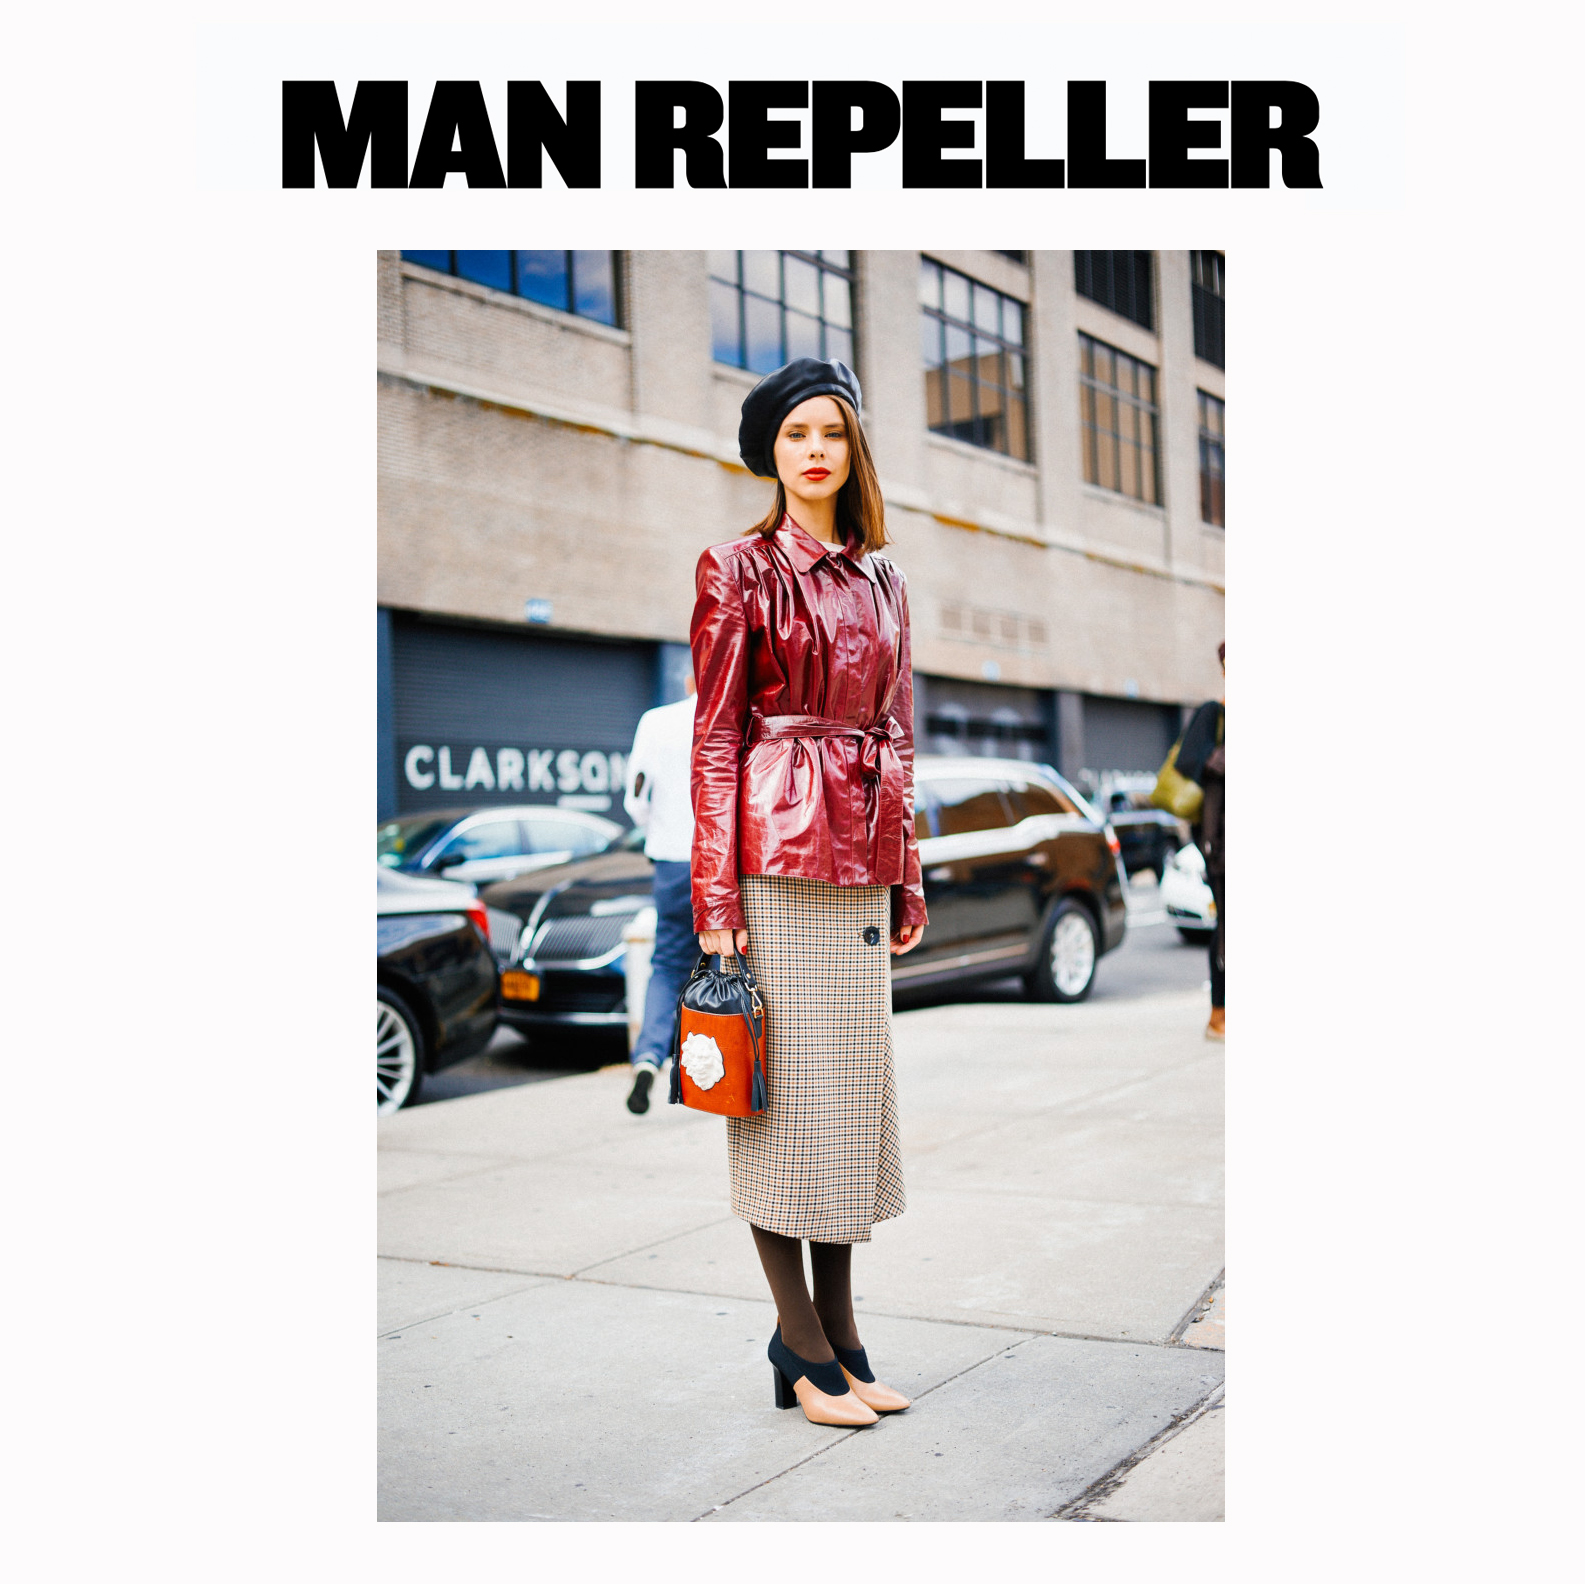 NYFW-Street-Style-Fall-2017-Man-Repeller-Day-2-12-848x1272.jpg